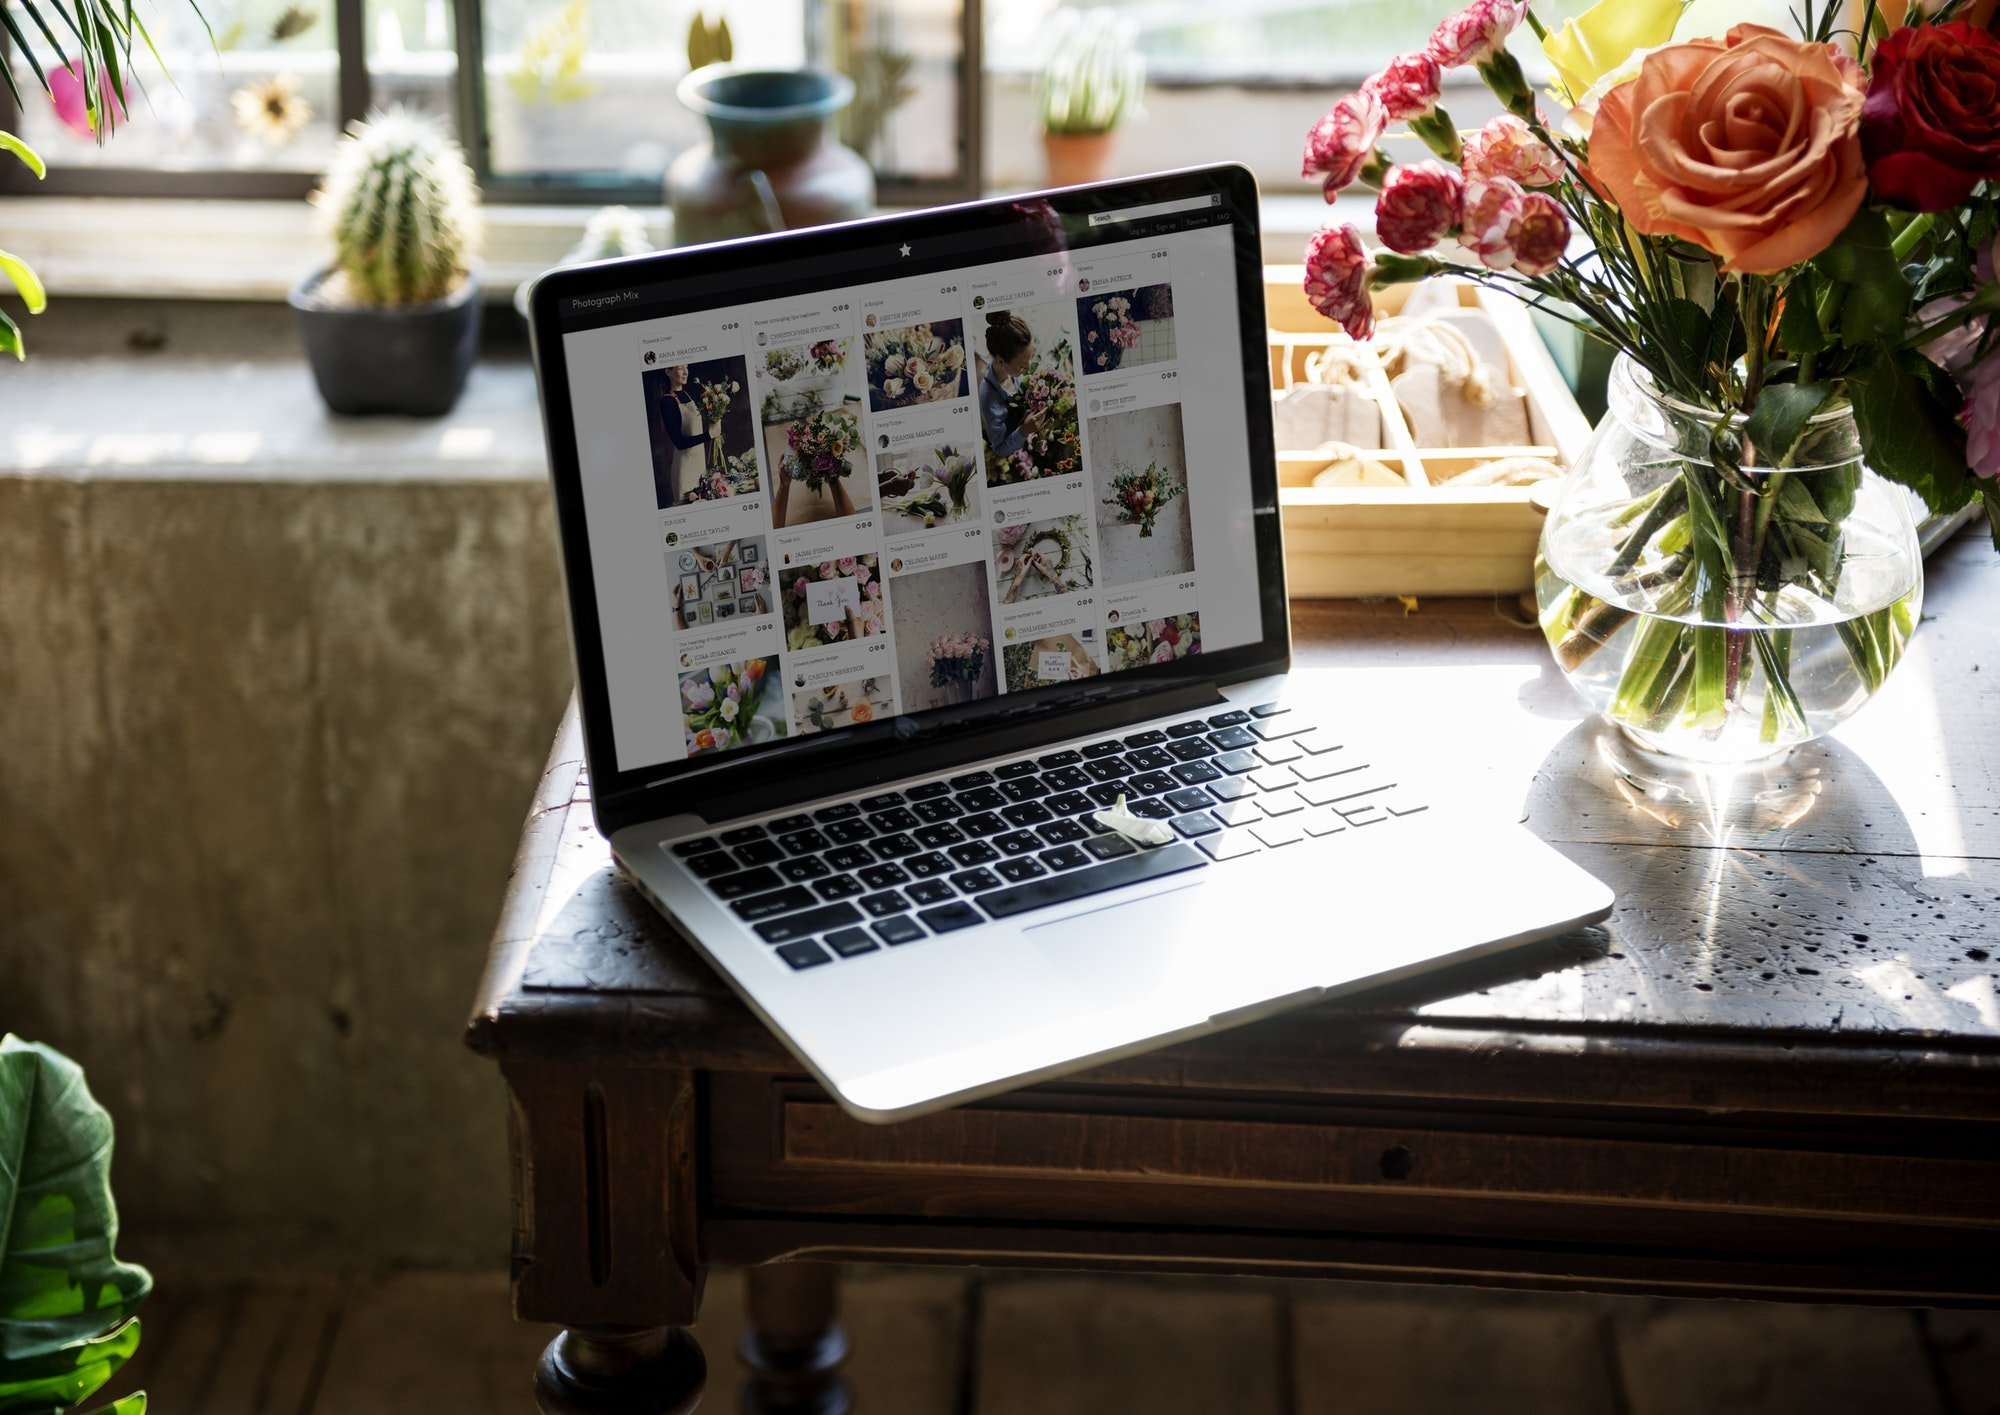 laptop and flowers - Capstone Digital Marketing